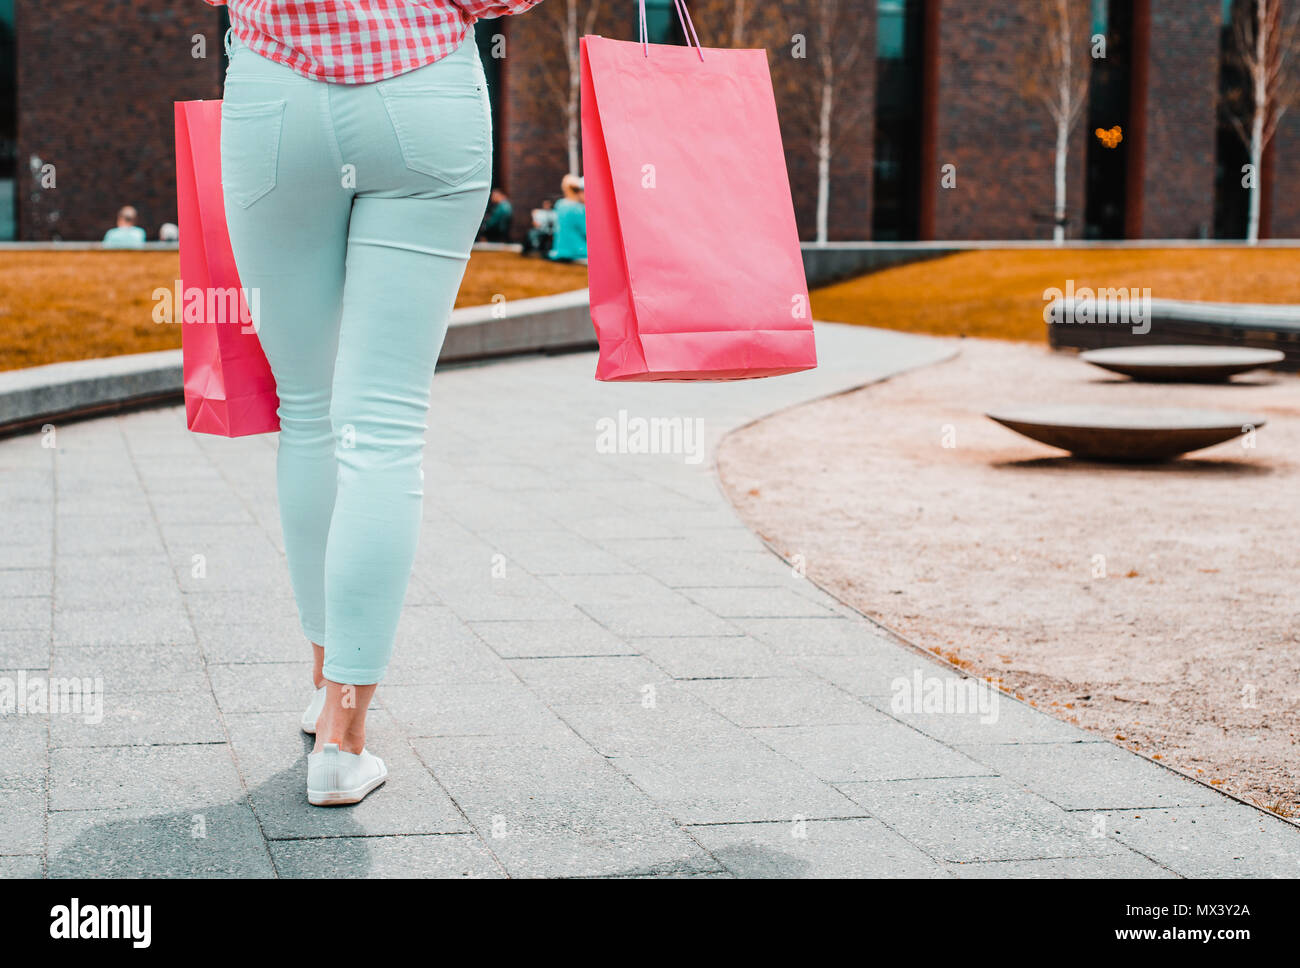 Colorful shopping bags. Pink, yellow bags full of shopping. Concept lifestyle and shopping. Satisfaction with bought clothes. - Stock Image